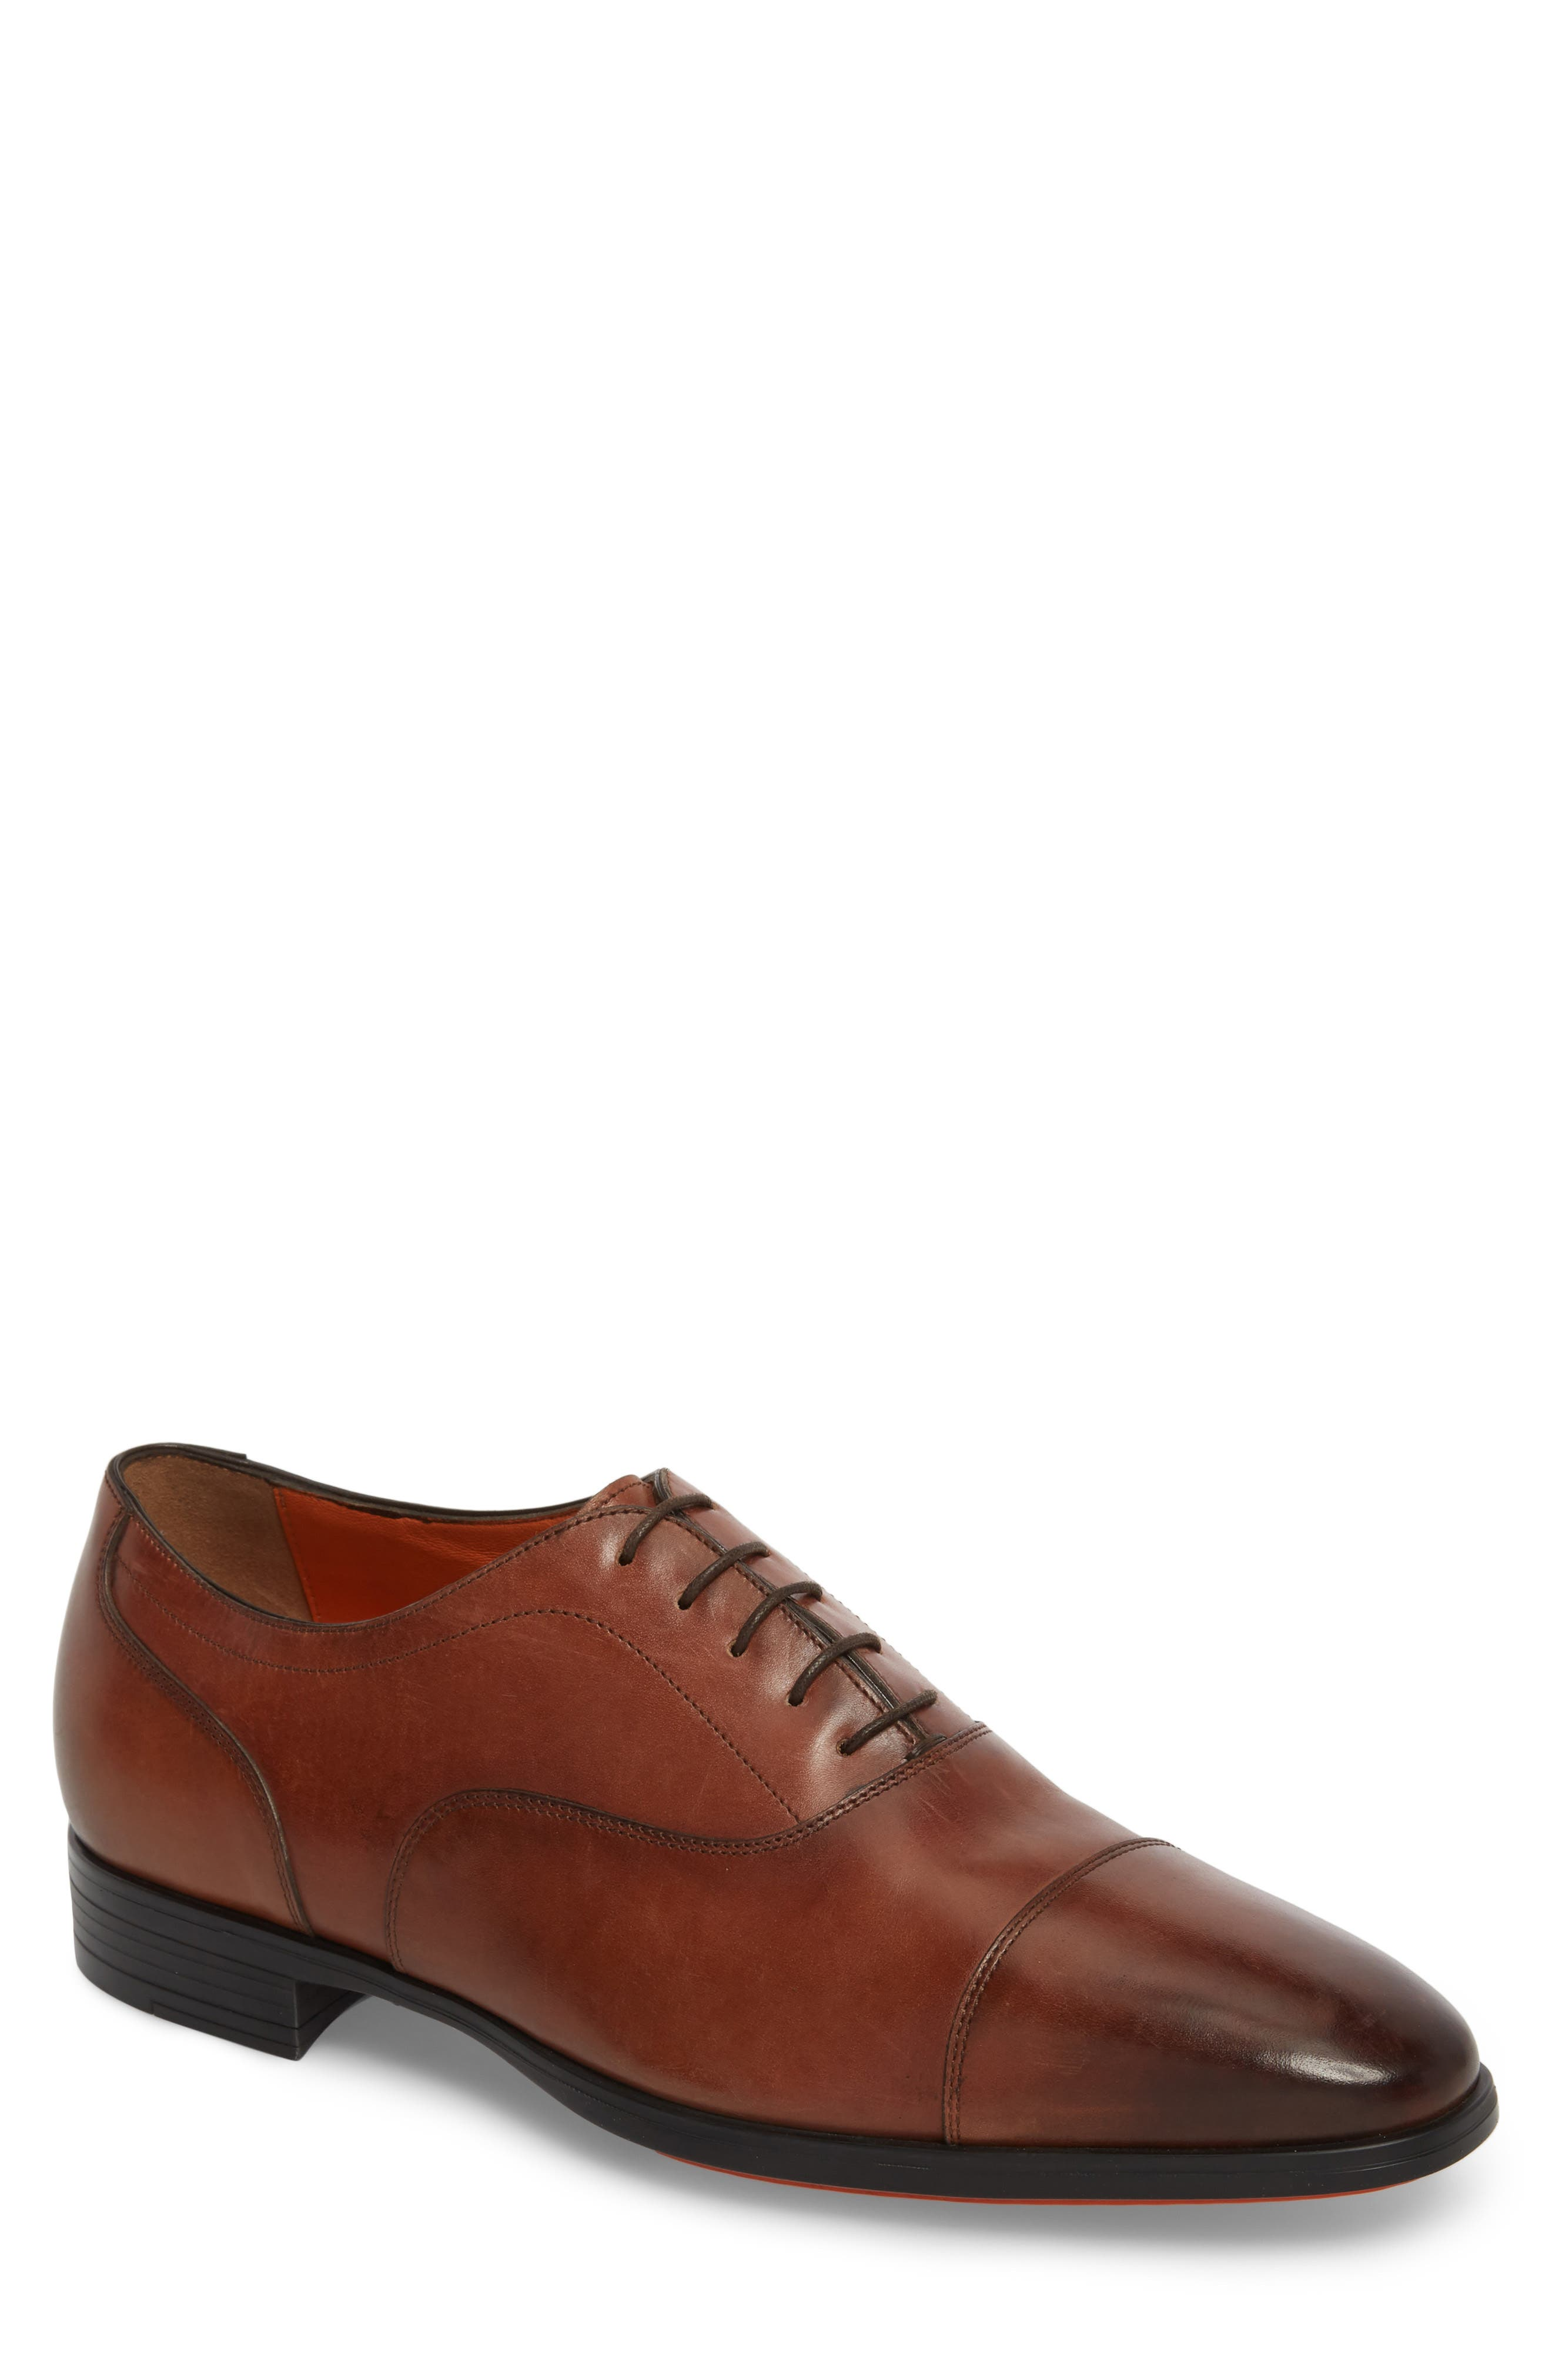 Eamon Cap Toe,                             Main thumbnail 1, color,                             Brown